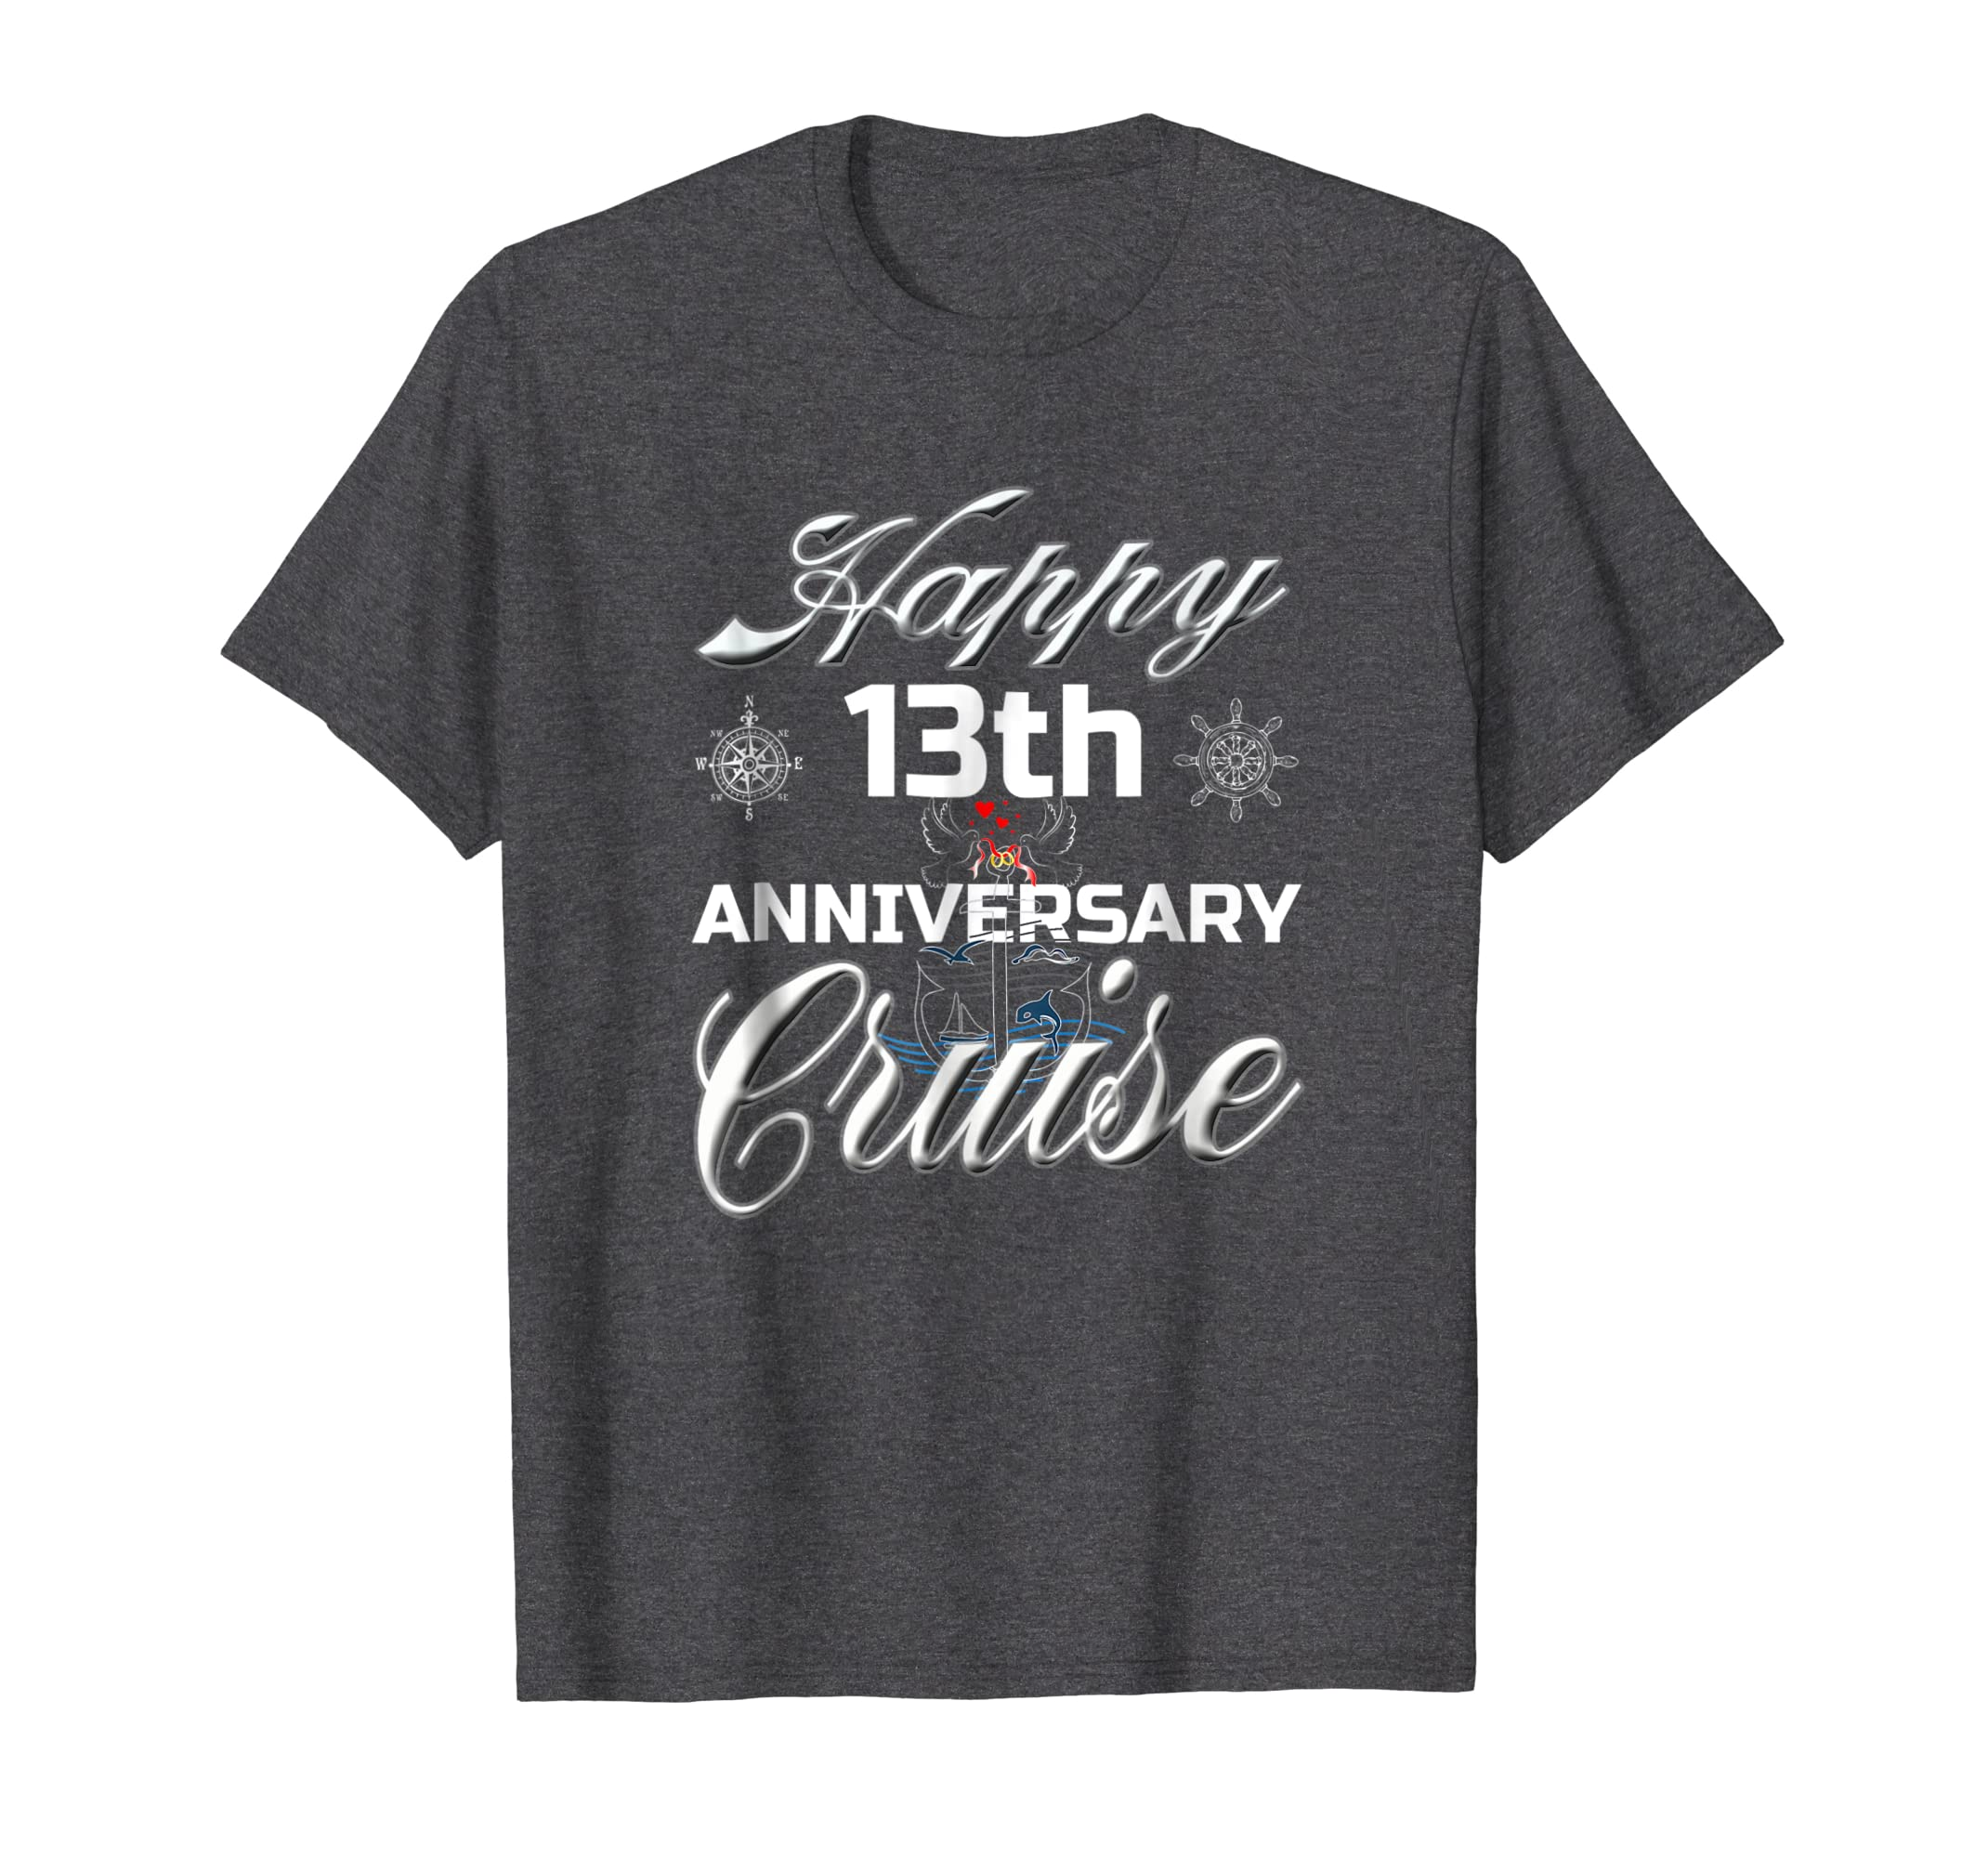 Happy 13th Anniversary Cruise Shirt Funny Cruising Family